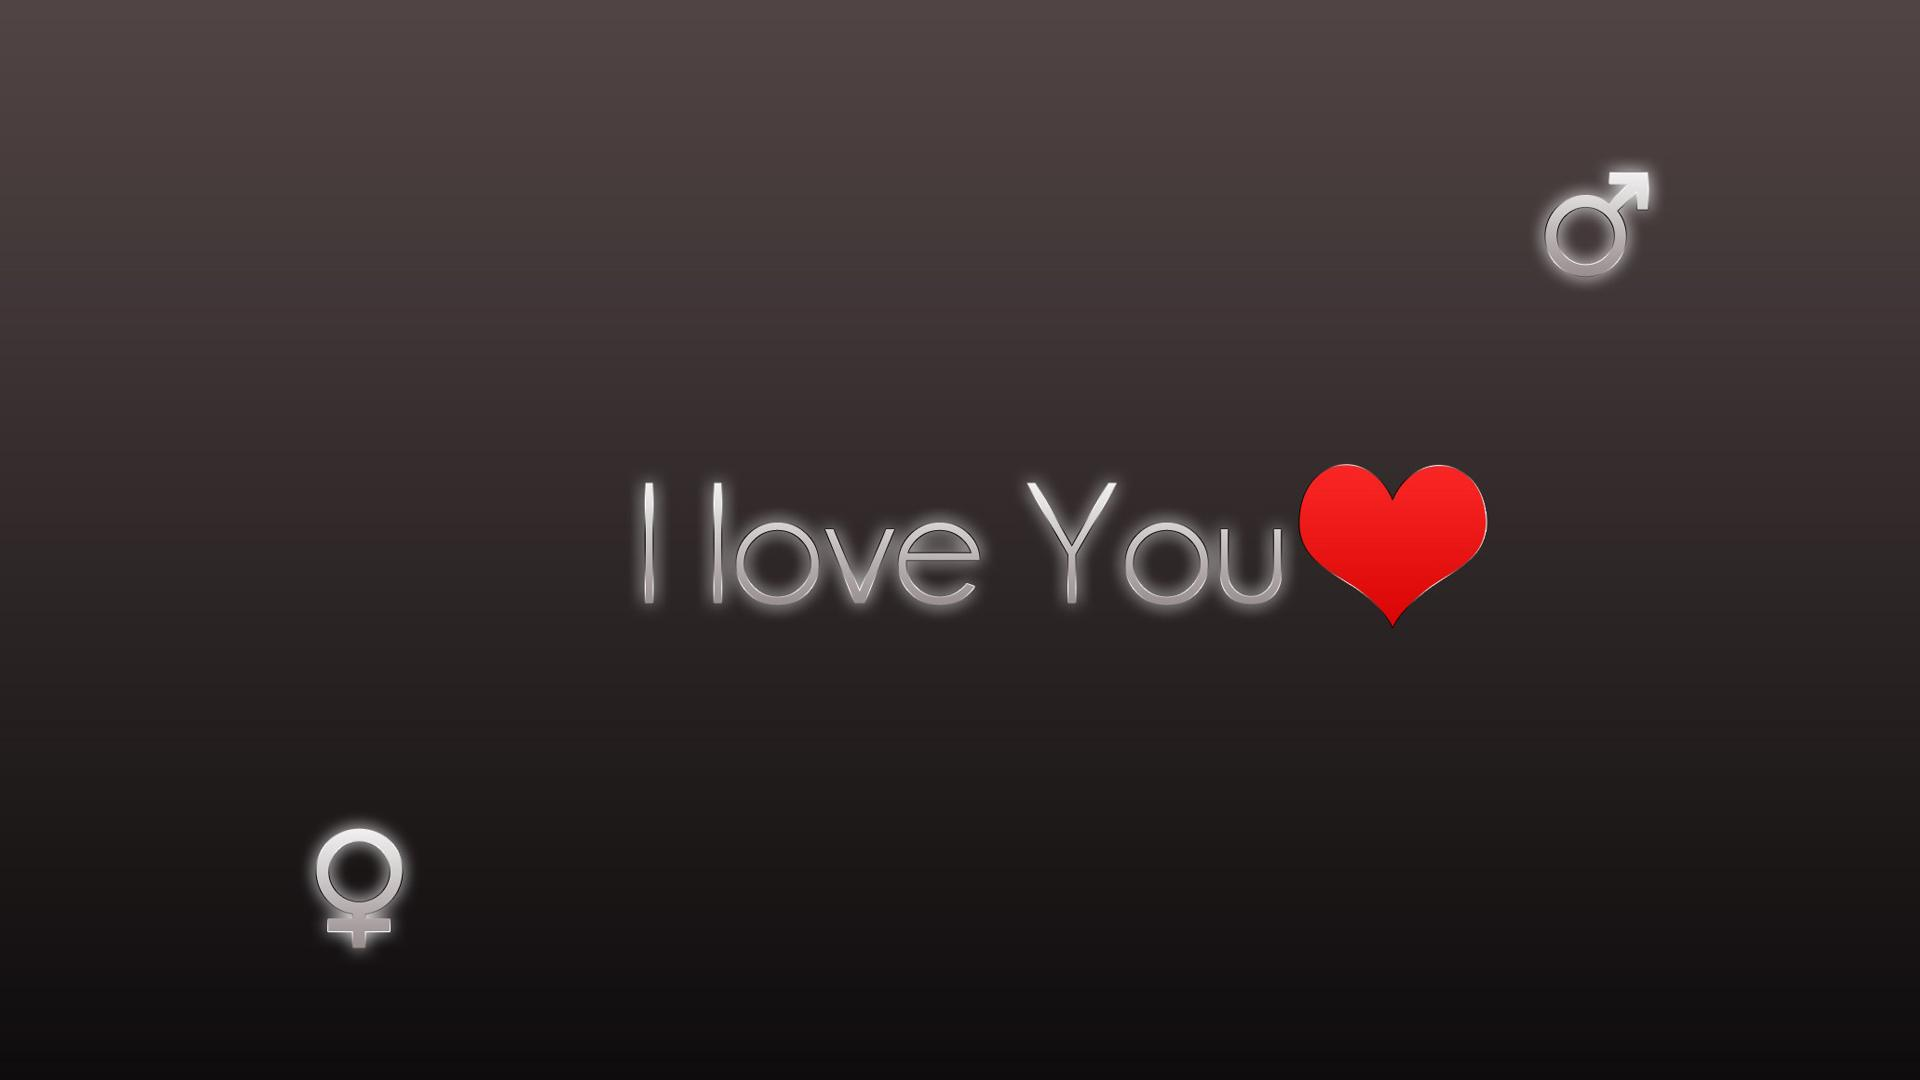 Love You Wallpaper Mobile : I Love You Wallpapers With Quotes - Wallpaper cave